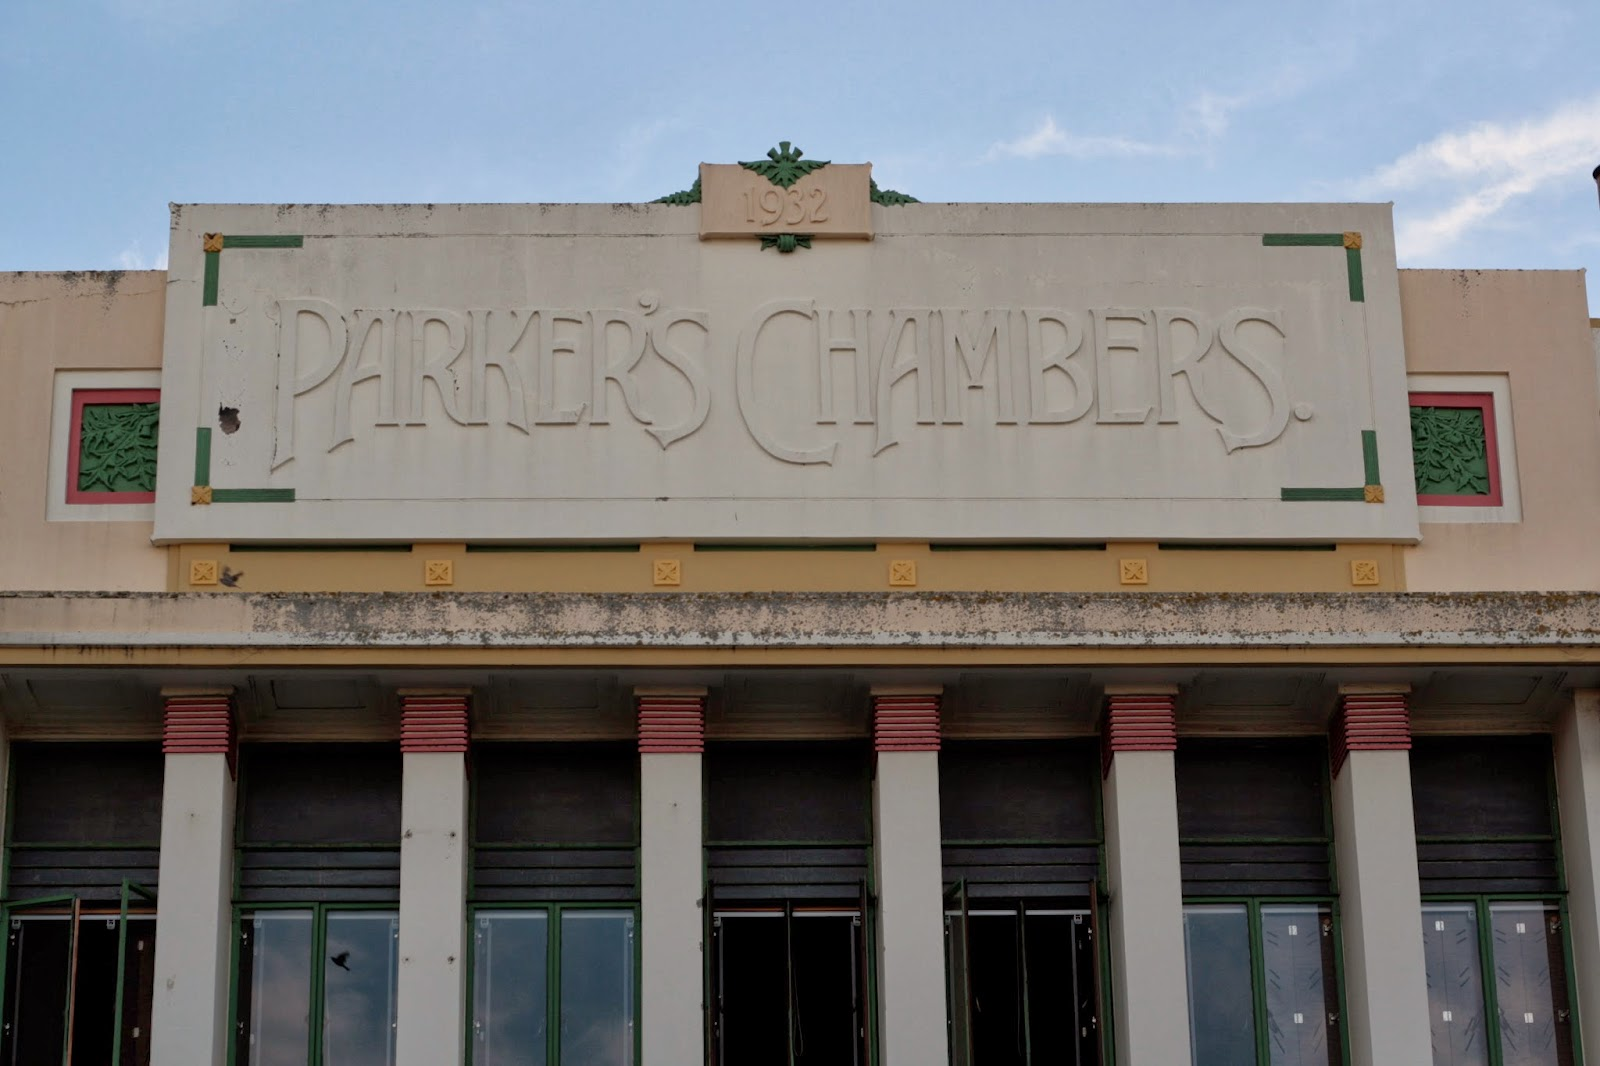 Parker's Chambers art deco style building 1932